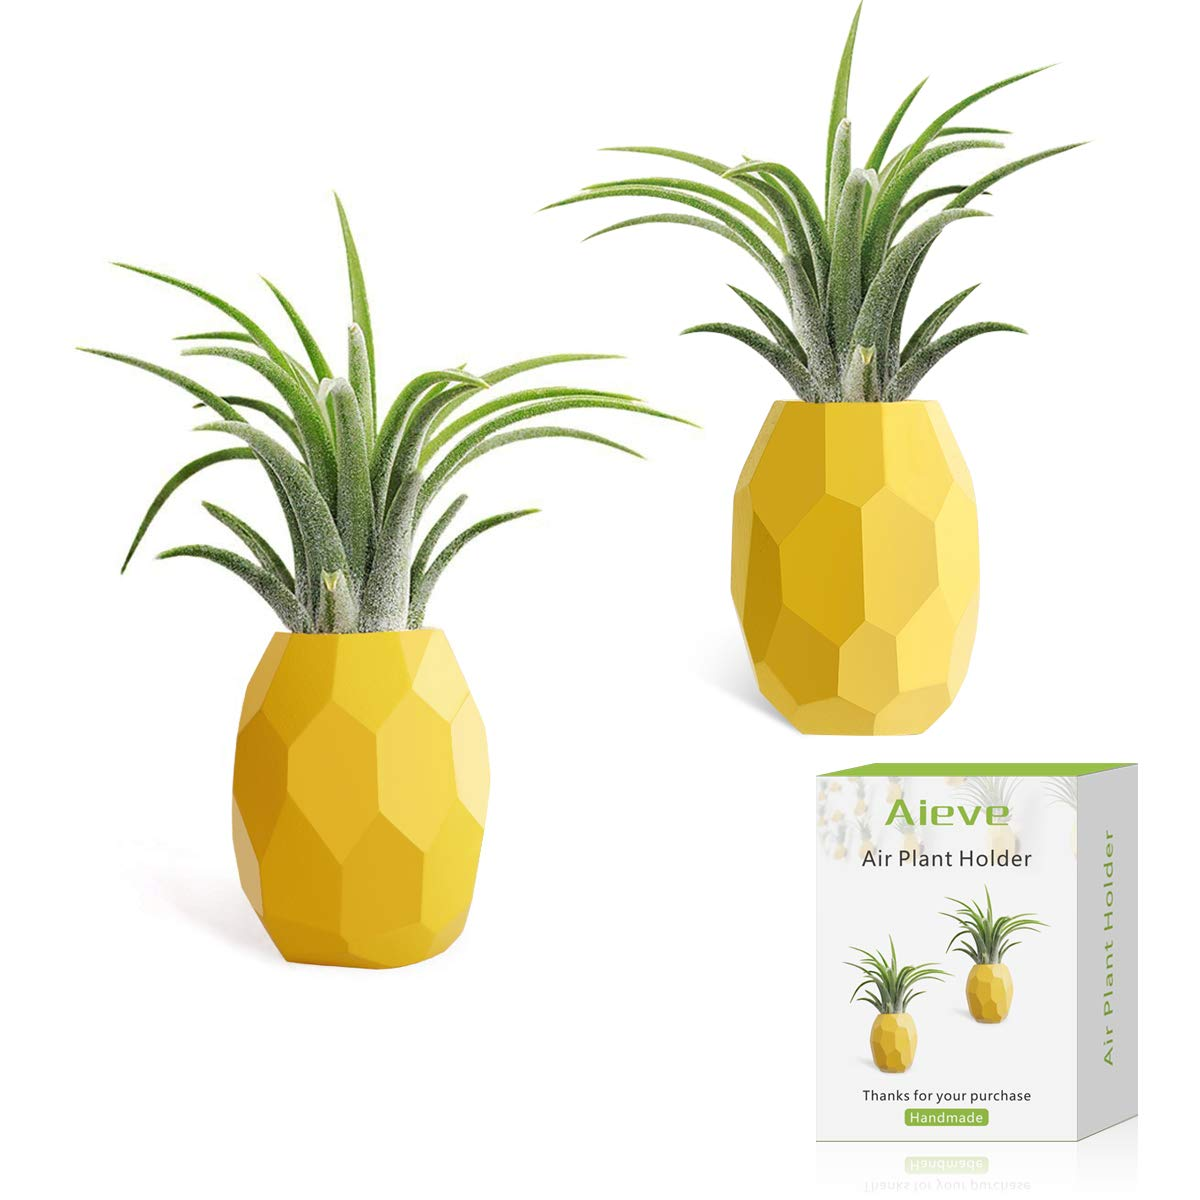 AIEVE Air Plant Holder, 2 Pack Air Plant Pineapple Planter Tillandsia Holder Hanger Geometric Air Plant Holder Stand Display with Magnet for Hanging Air Plants Indoor Wall Home Decor